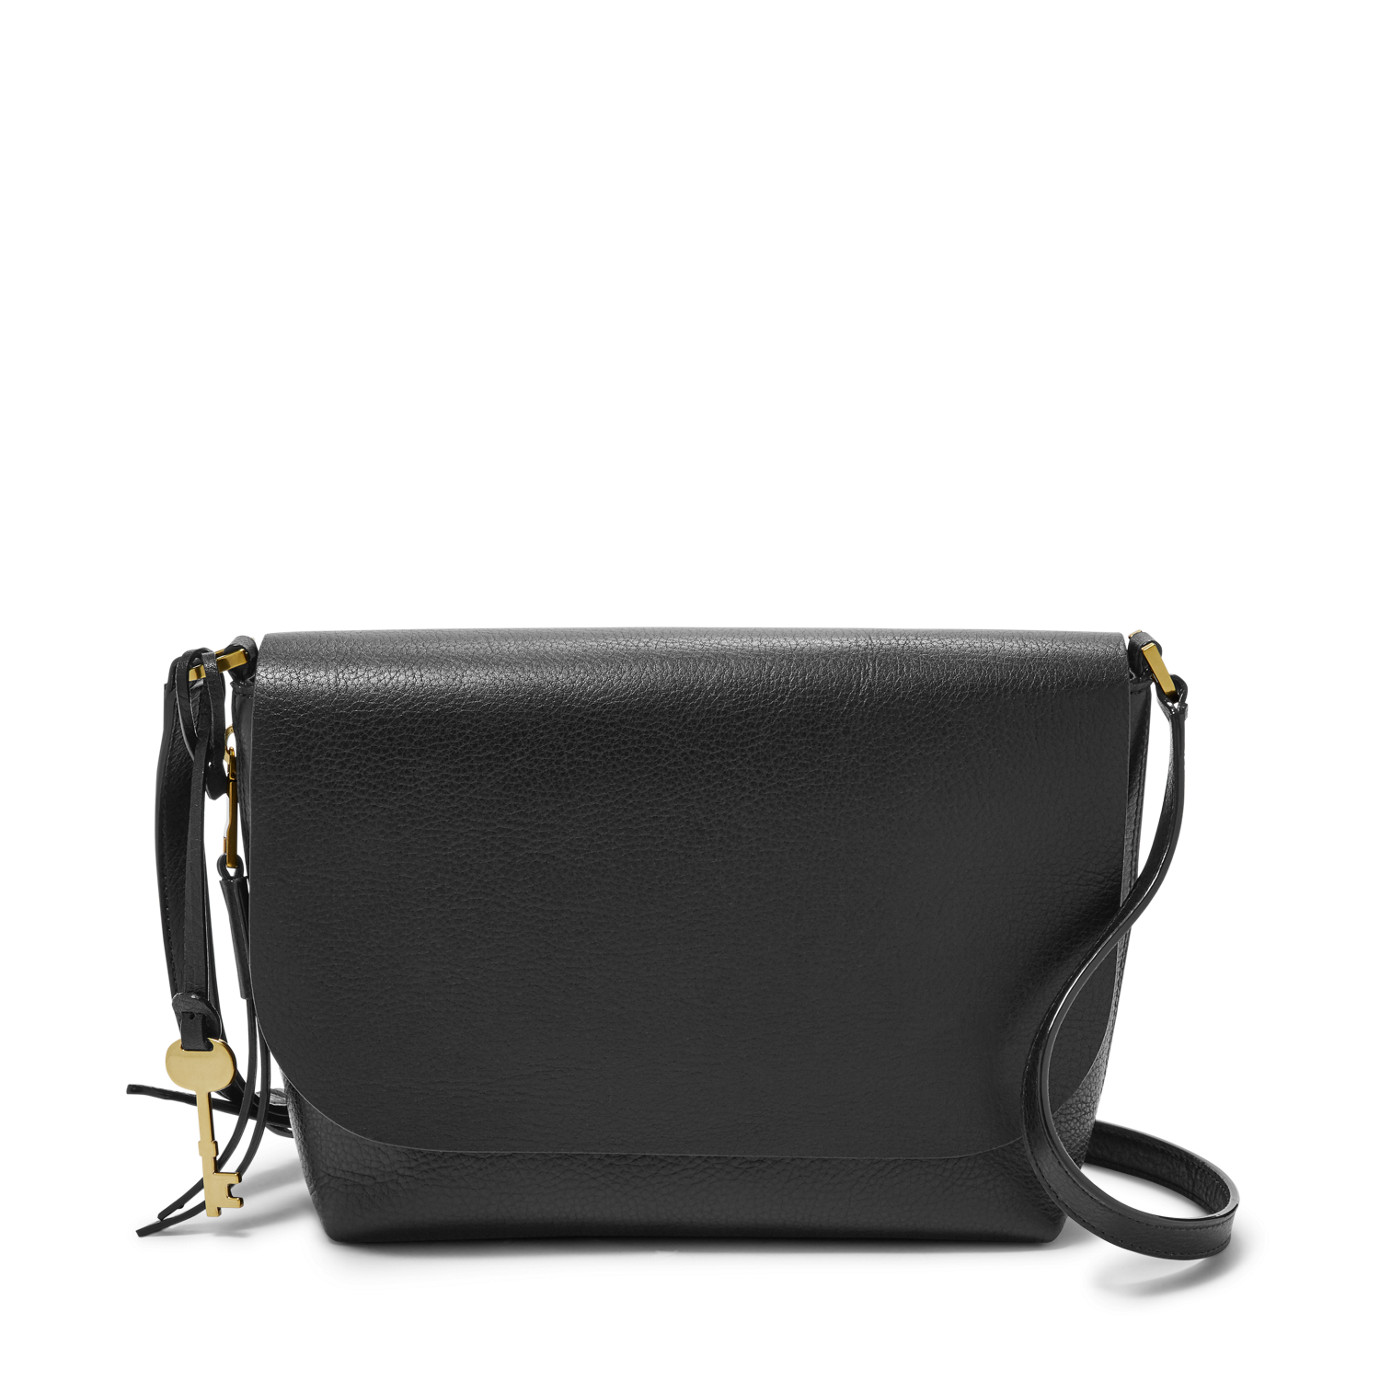 Maya Small Crossbody